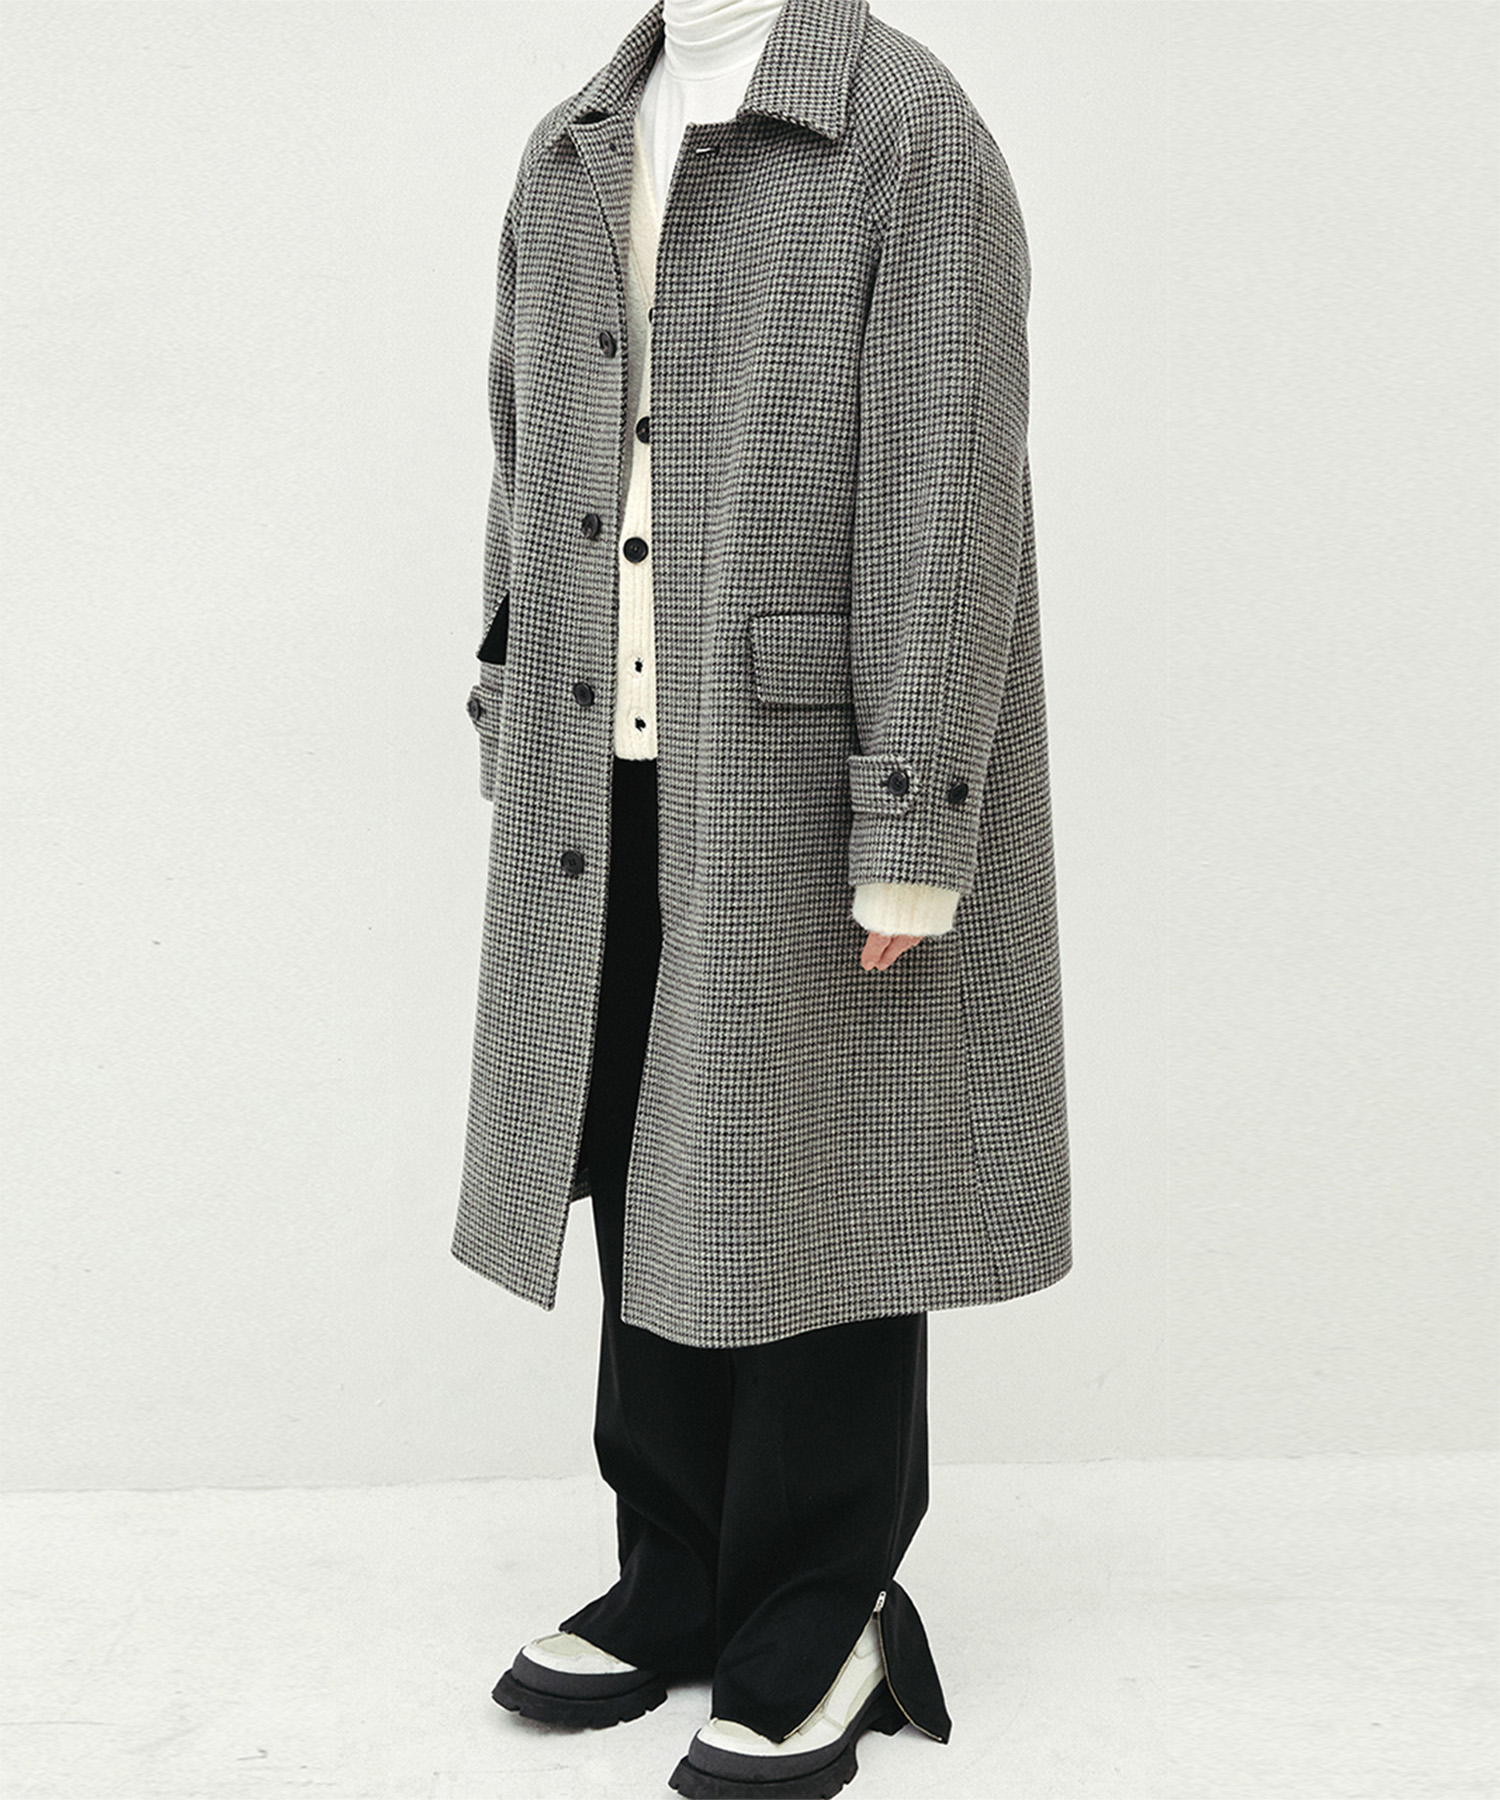 HALEINE알렌느 GREYCHECK wool 3D detail balmacancoat(MJ704)